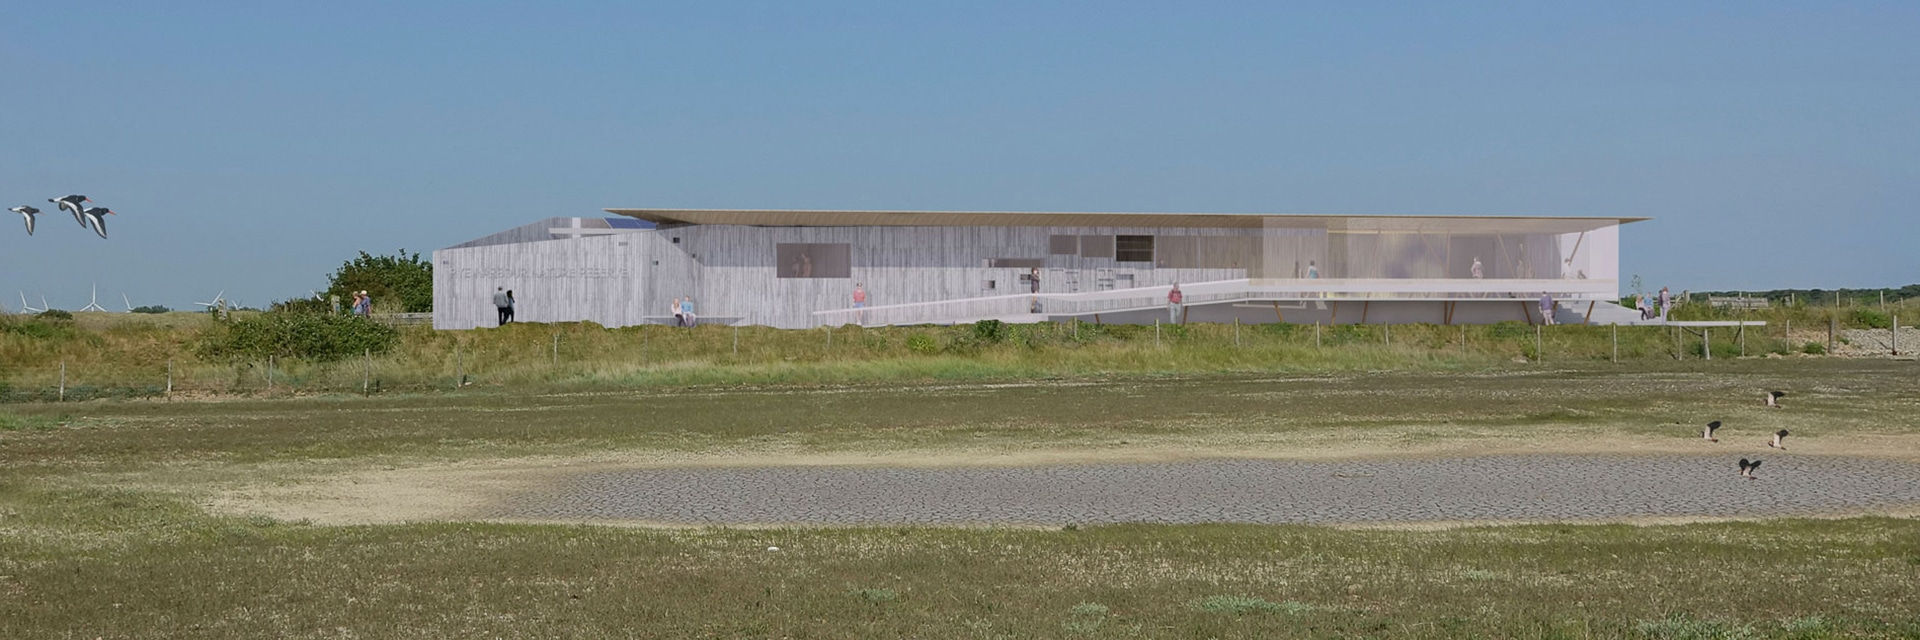 Rye Harbour Discovery Centre, National Lottery Heritage Fund Business Plan